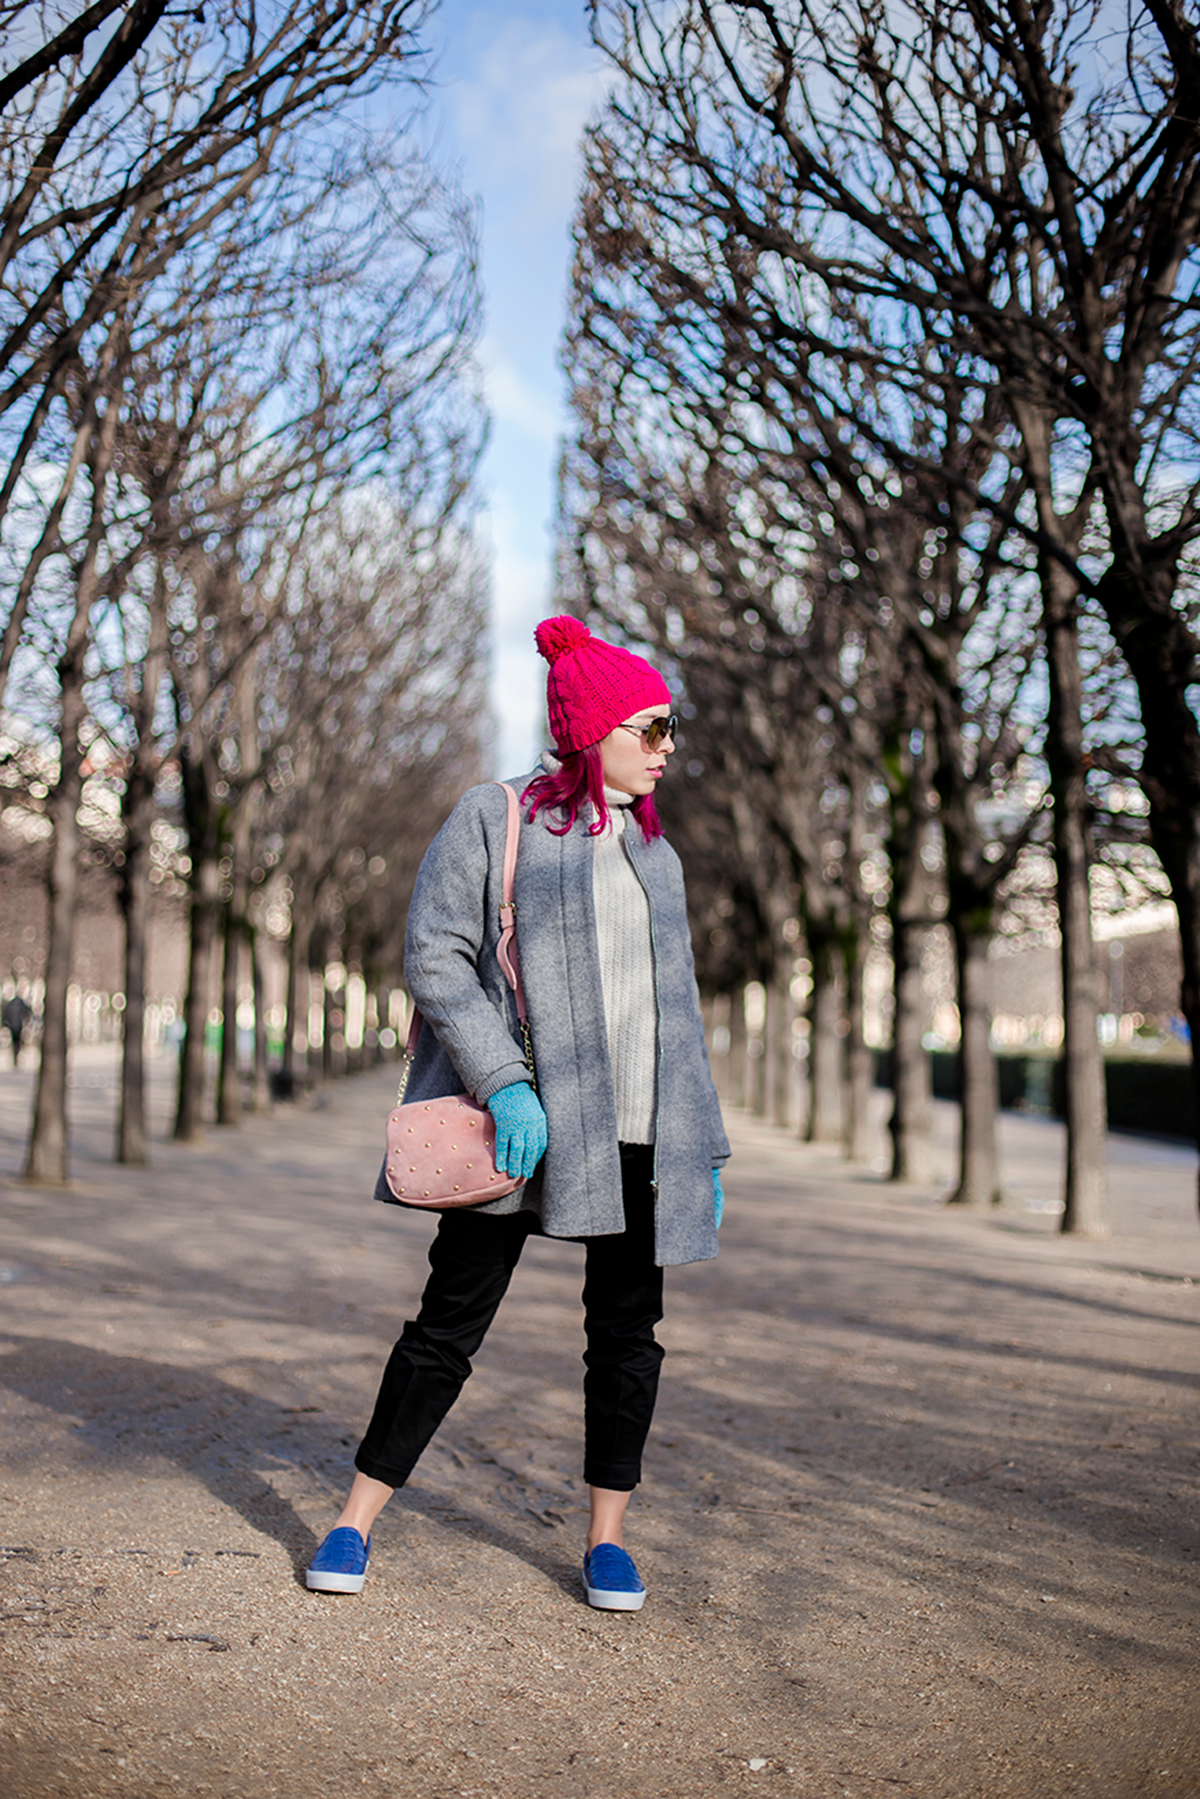 Ambitieuse Paris outfit of the day winter colorful look